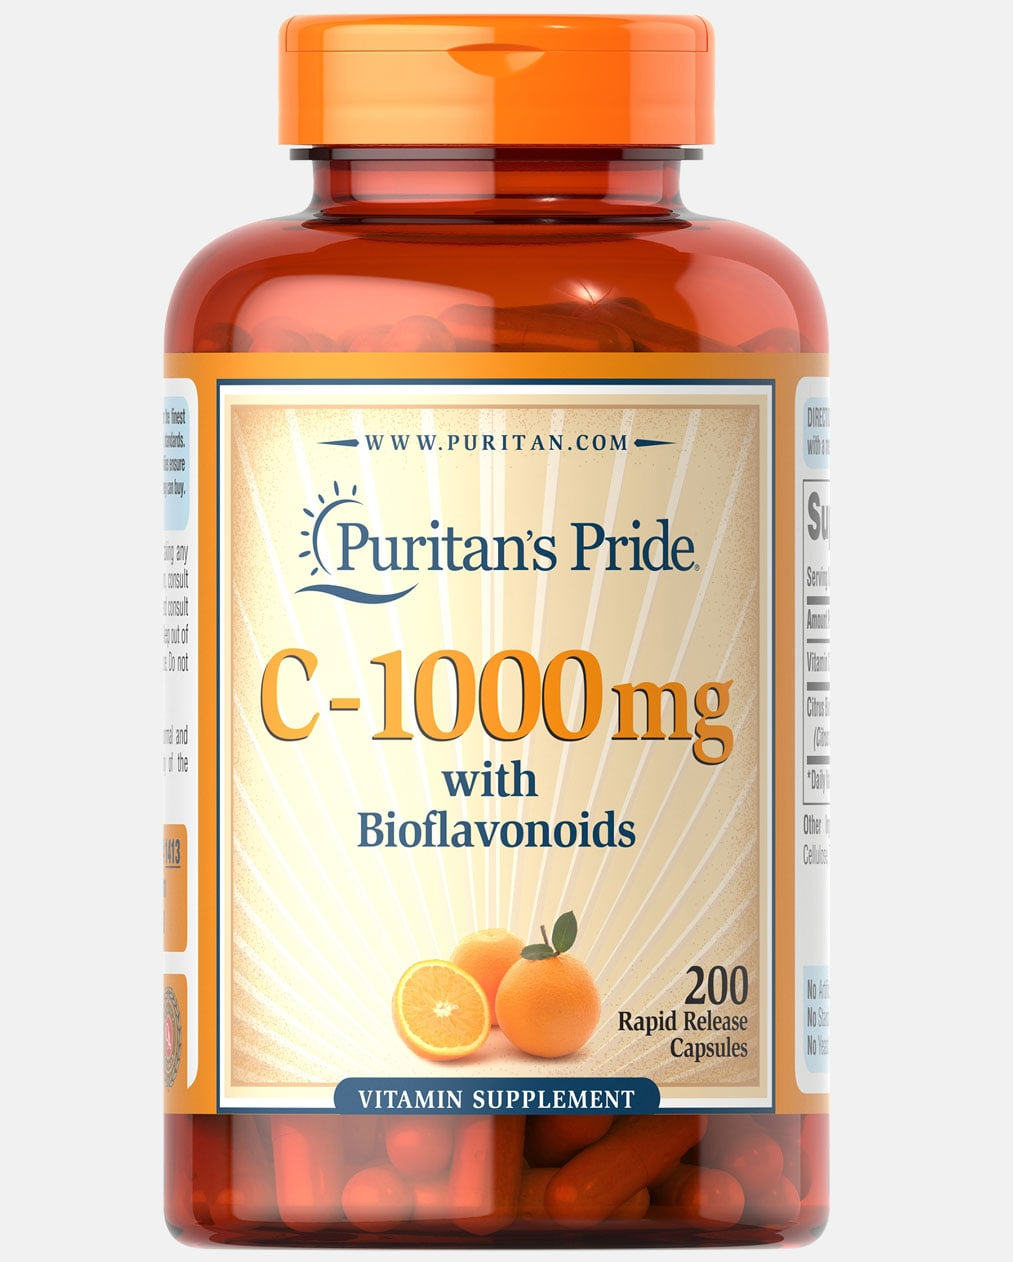 Vitamin C-1000 mg with Bioflavonoids